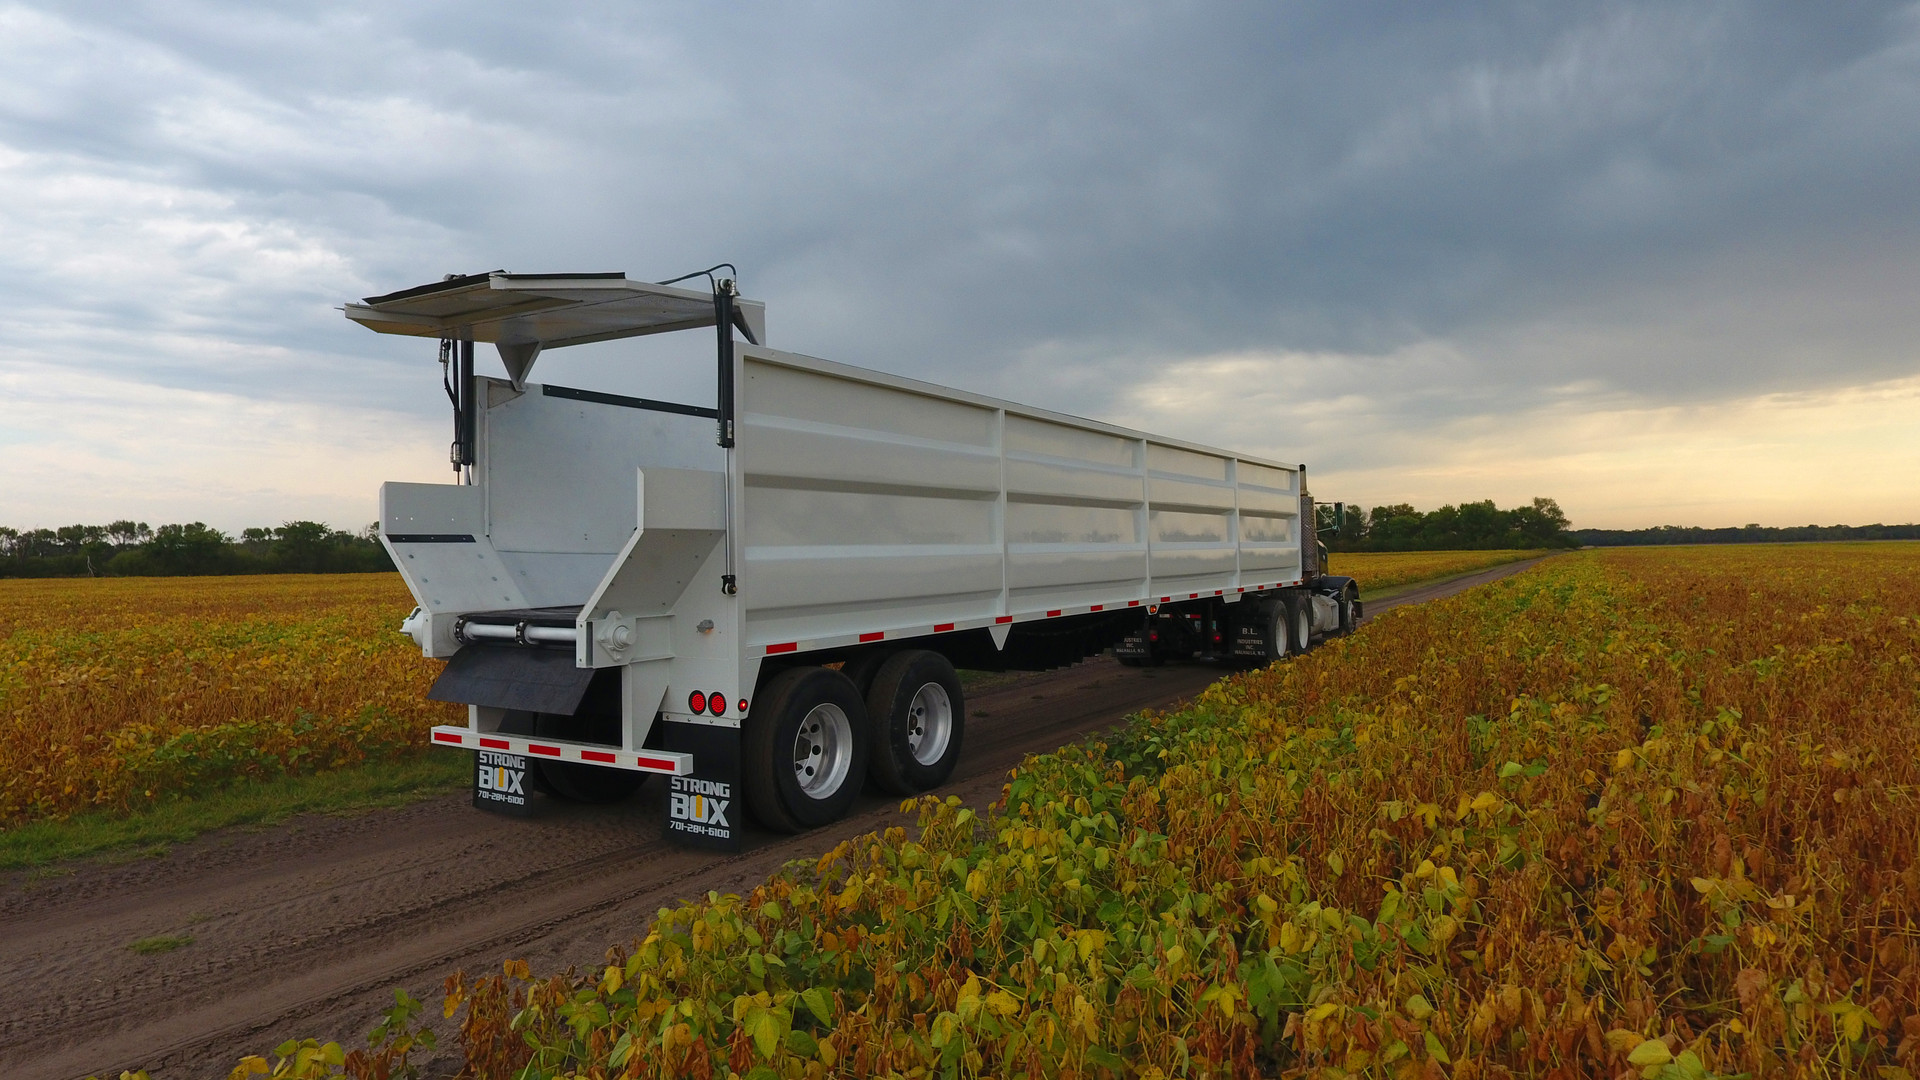 Strong Box Live Bottom Semi Trailer Stainless Steel